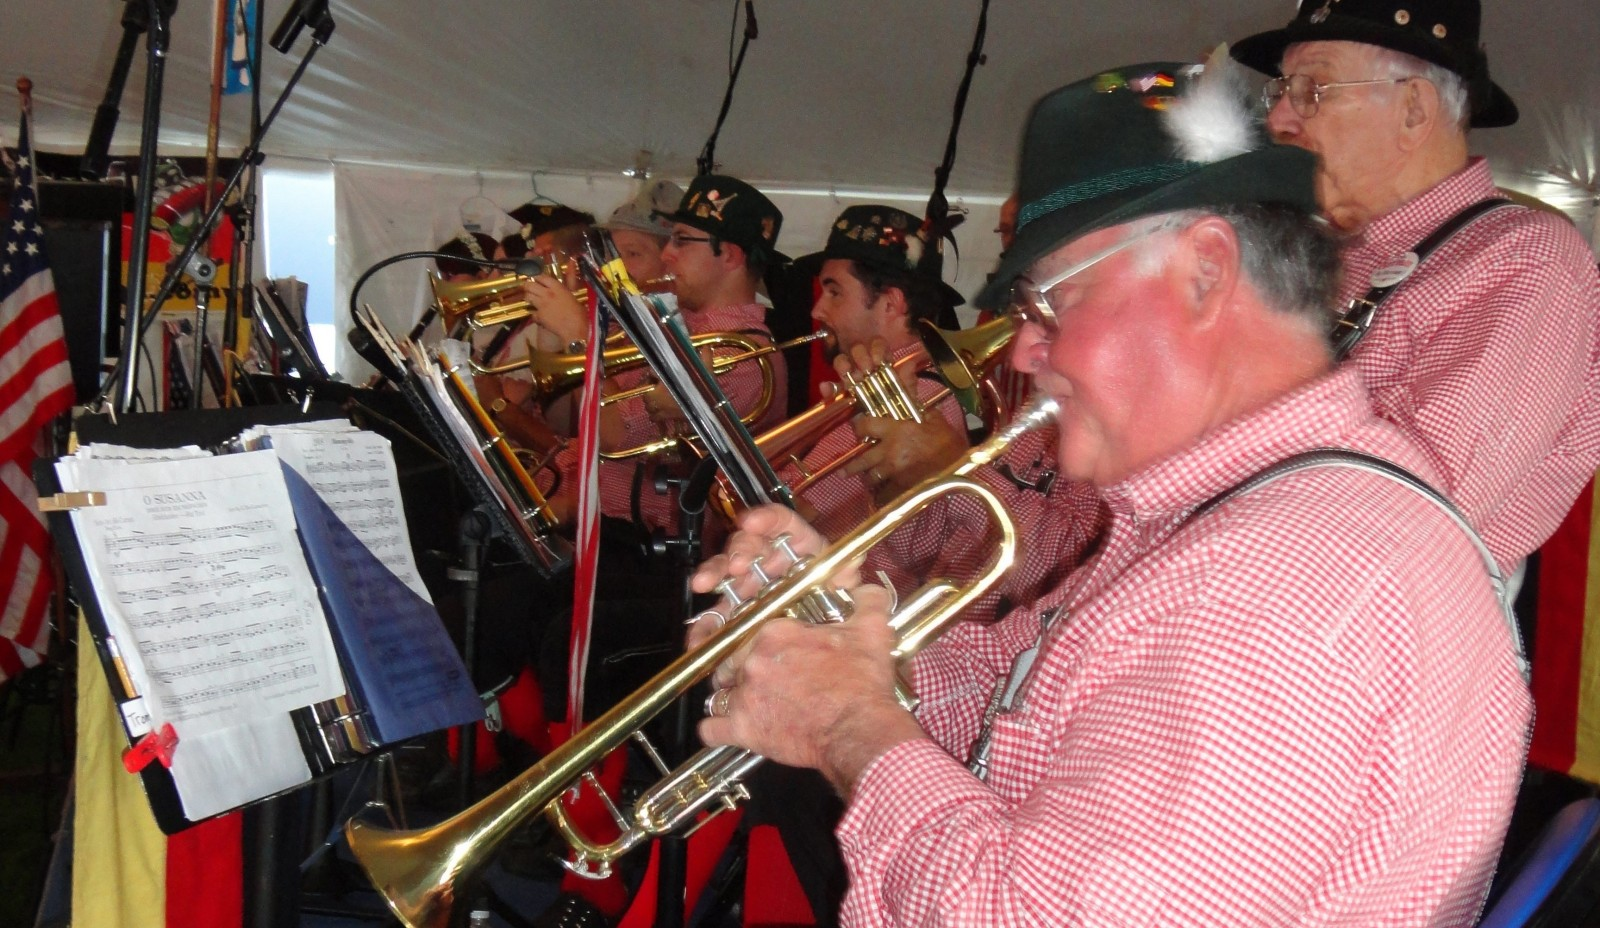 The band German American Musicians will perform at Old Falls Street Oktoberfest.